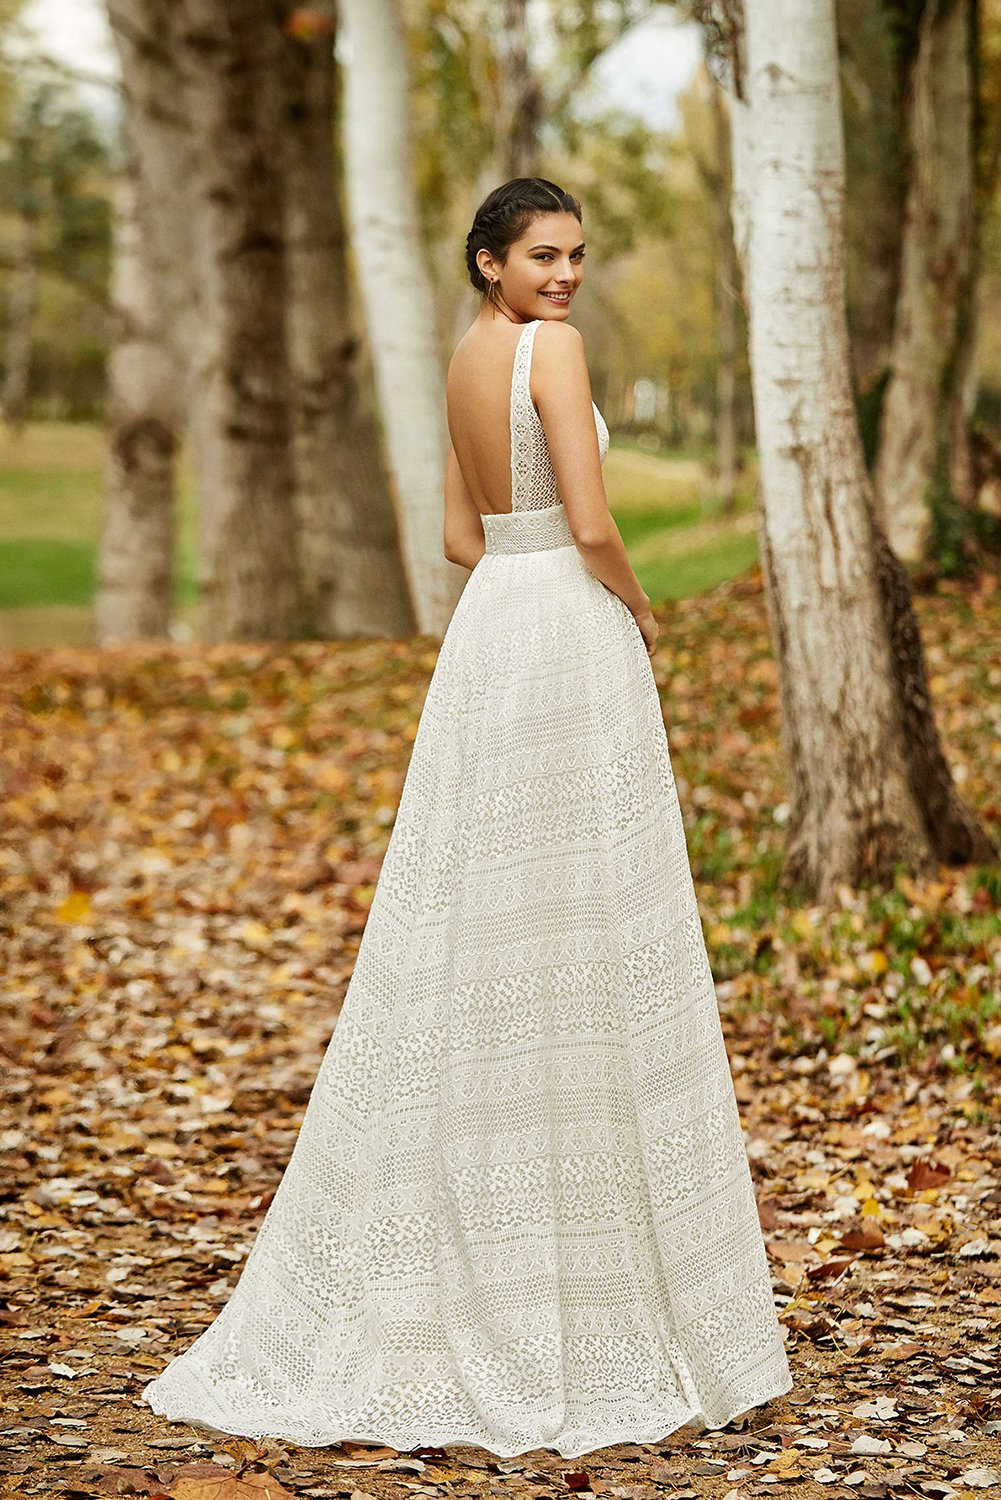 Olmeda - Sample Gown, Online Sample Sale - 1800, Aire Barcelona - Sample Gown - Eternal Bridal